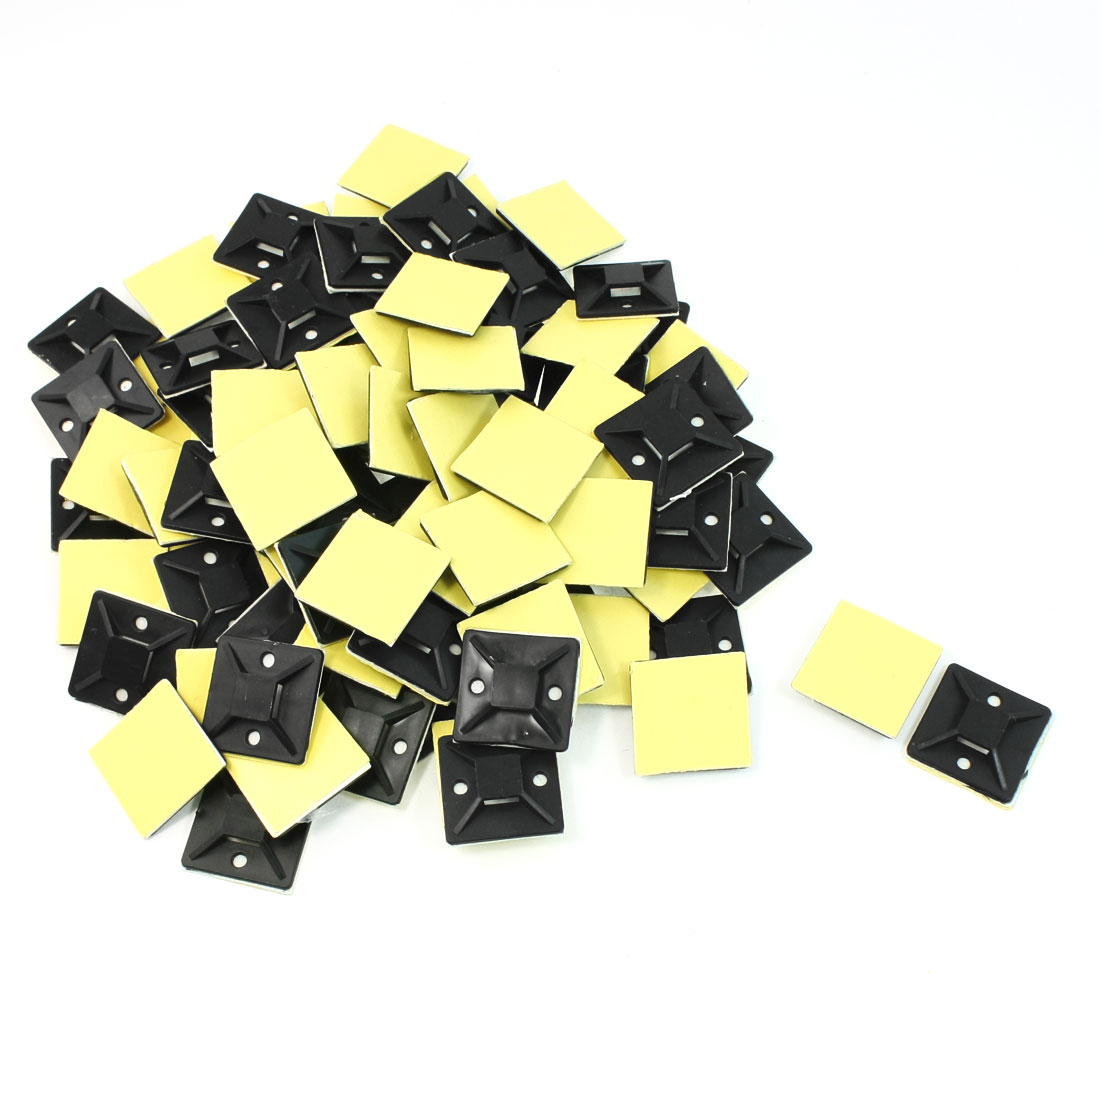 100 Pcs Black Hard Plastic Sticky Cable Tie Fixed Base